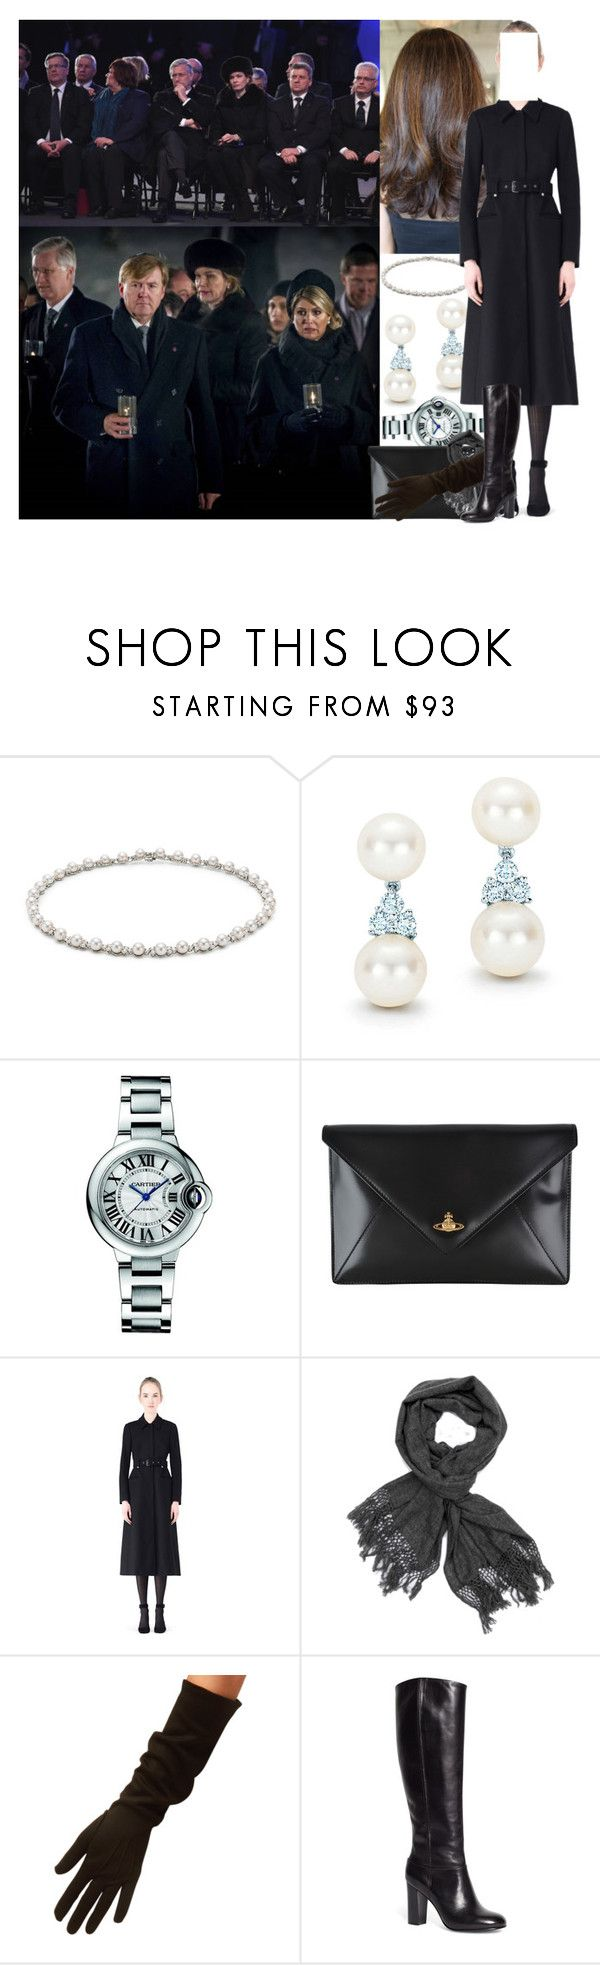 """""""Attending the 70th anniversary of the liberation of Auschwitz"""" by maryofscotland ❤ liked on Polyvore featuring Tiffany & Co., Cartier, Vivienne Westwood, RED Valentino, Cornelia James and Brooks Brothers"""